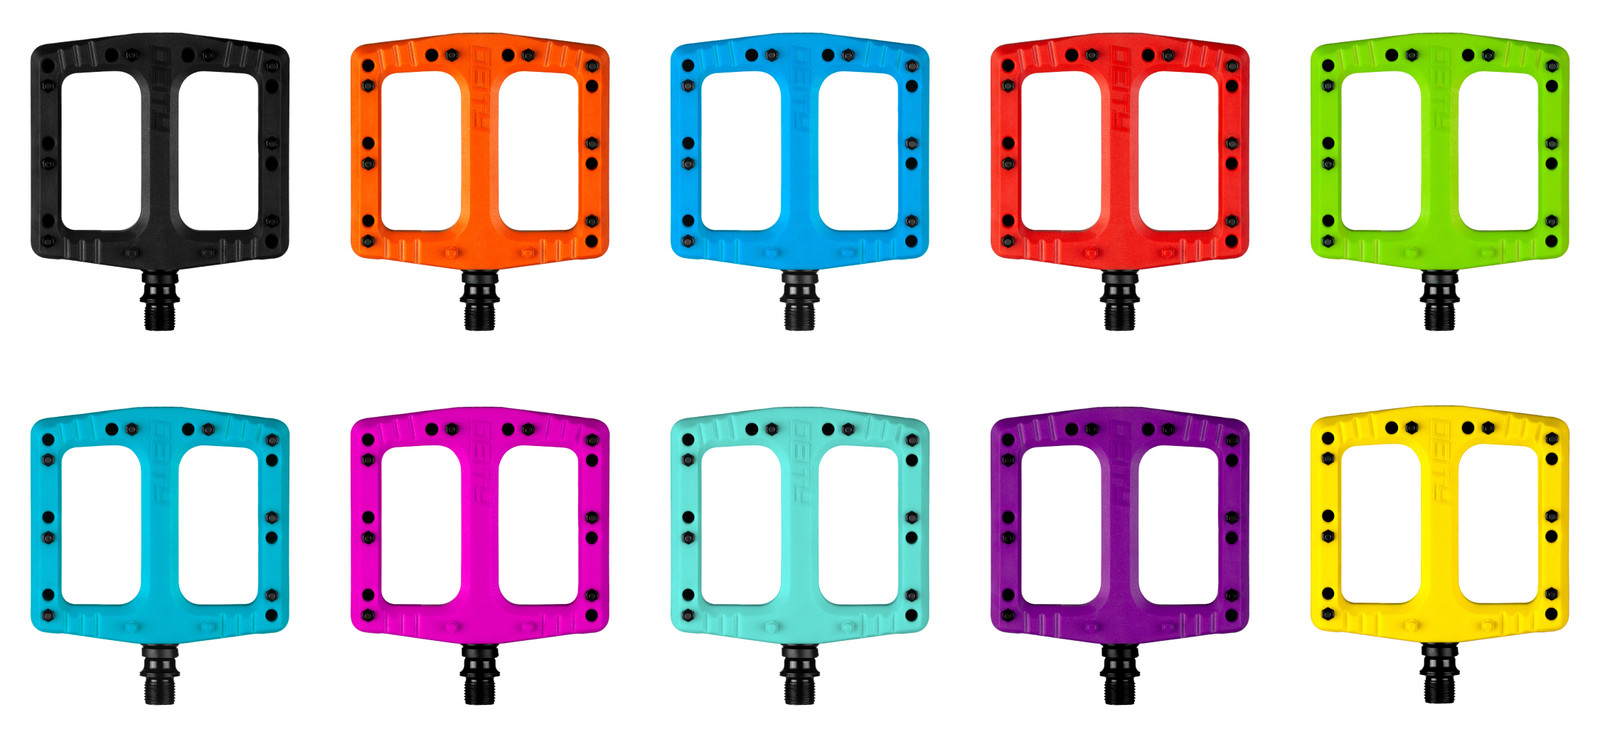 Full color range available in Black, Orange, Blue, Red, Green, Turq, Pink, Mint, Purple, and Shaolin Yellow